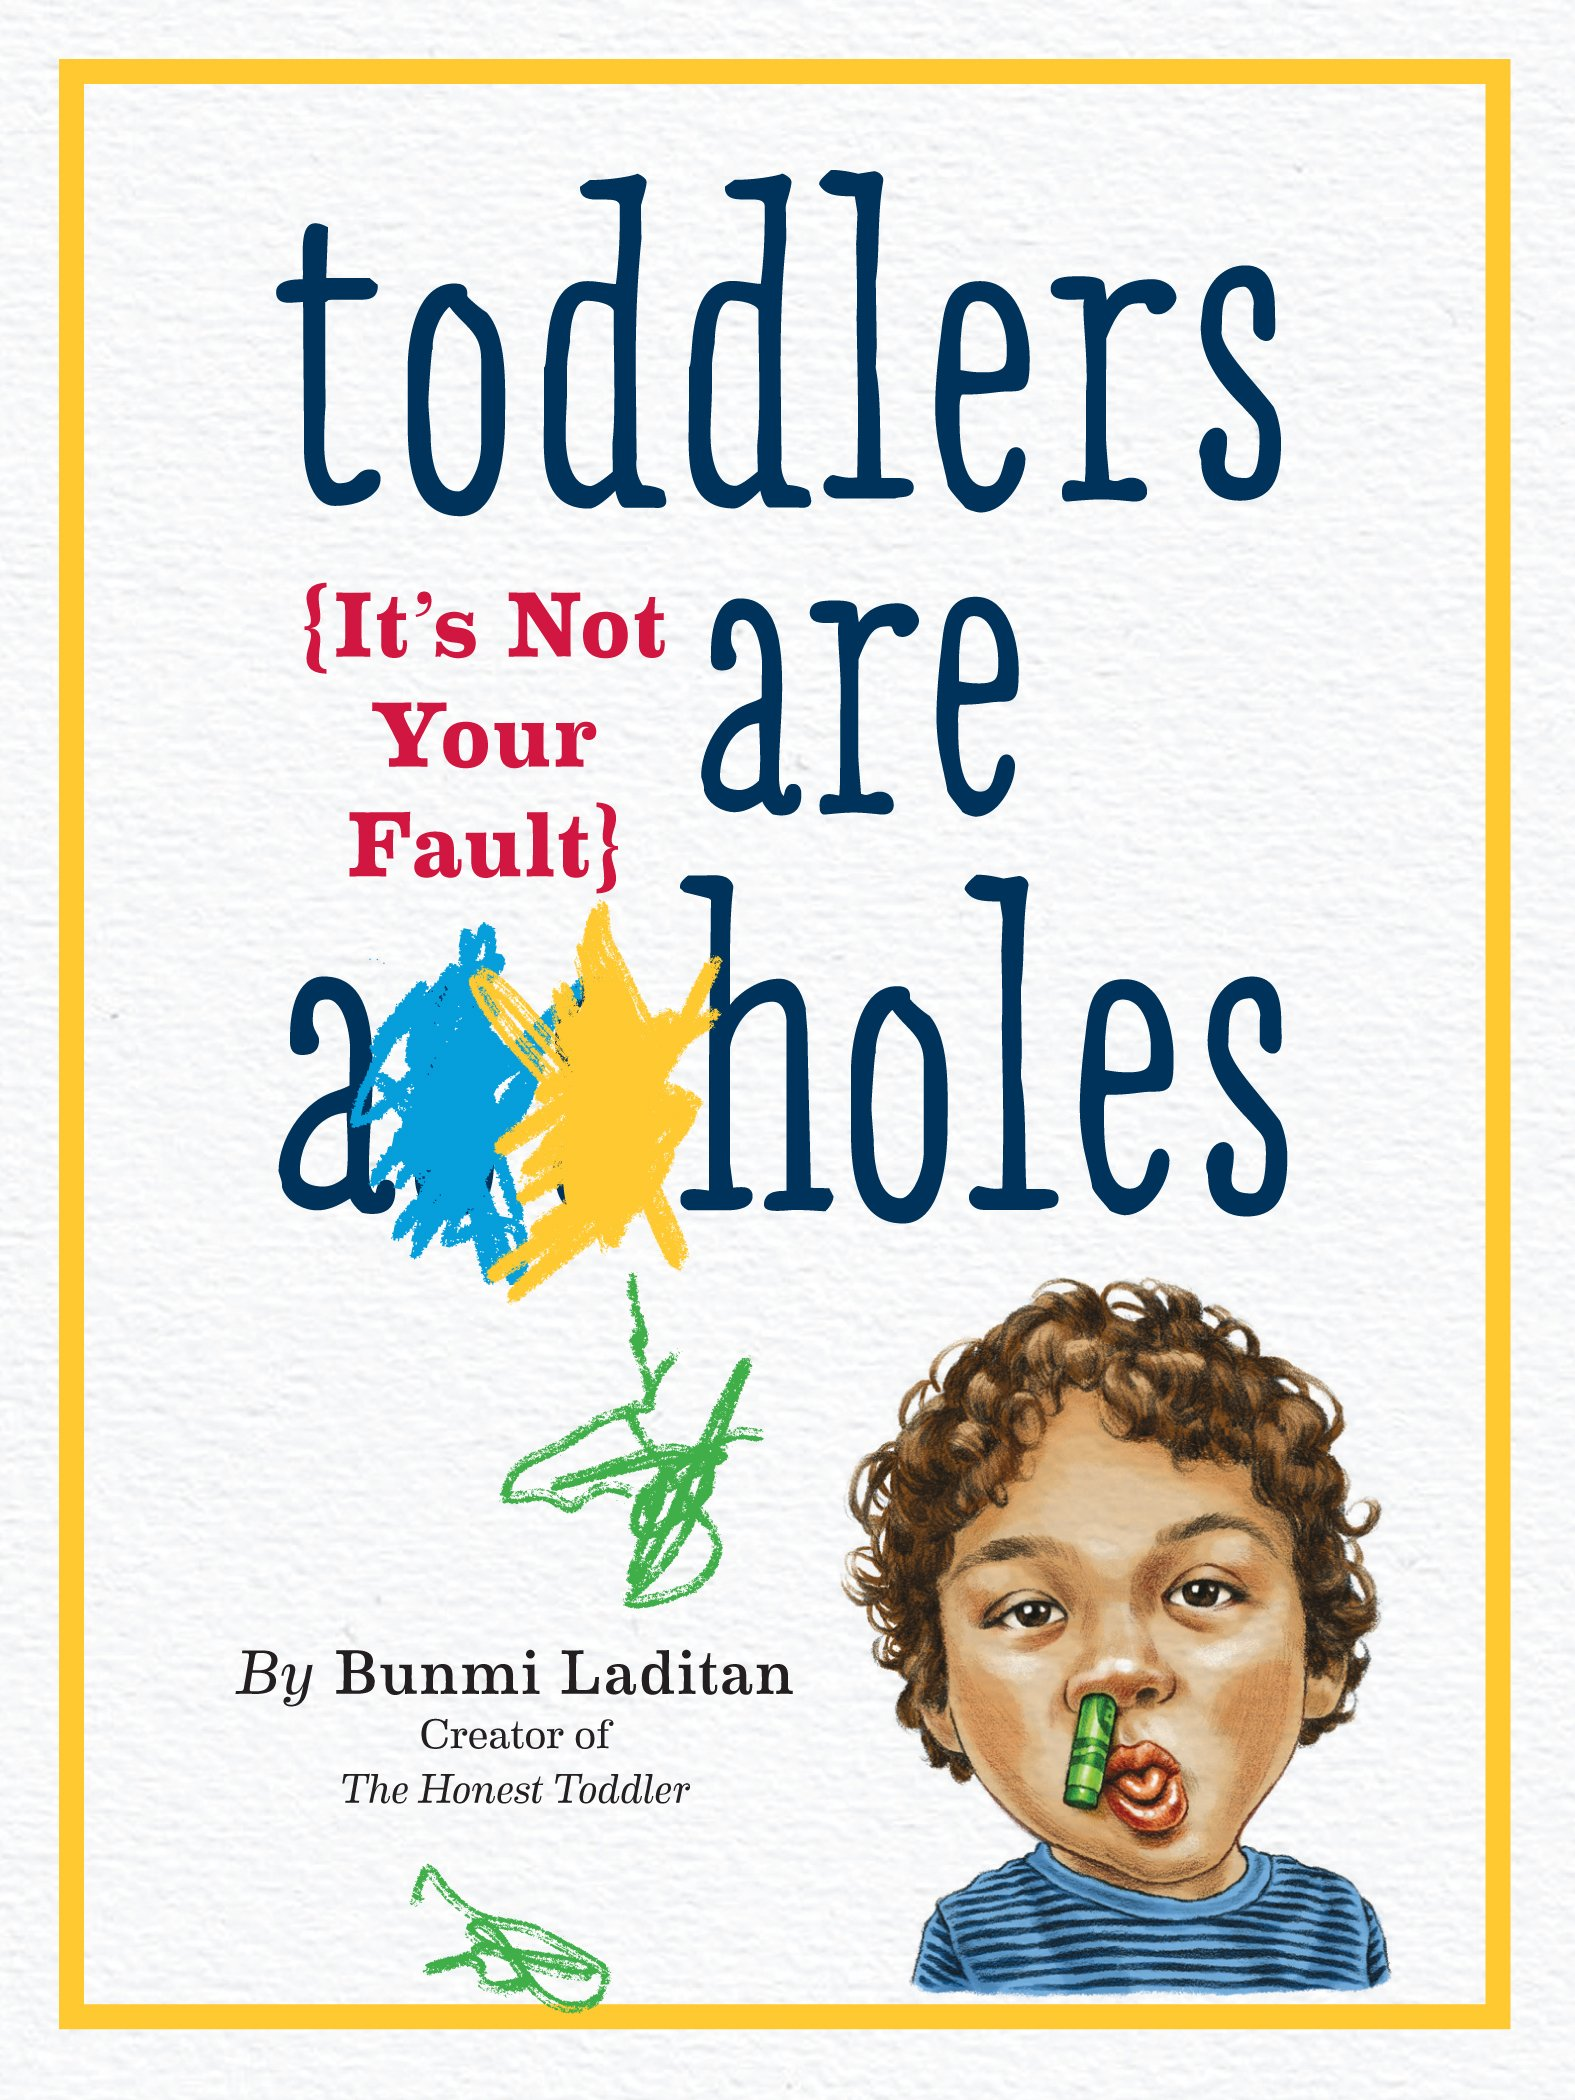 Toddlers Are holes Your Fault product image